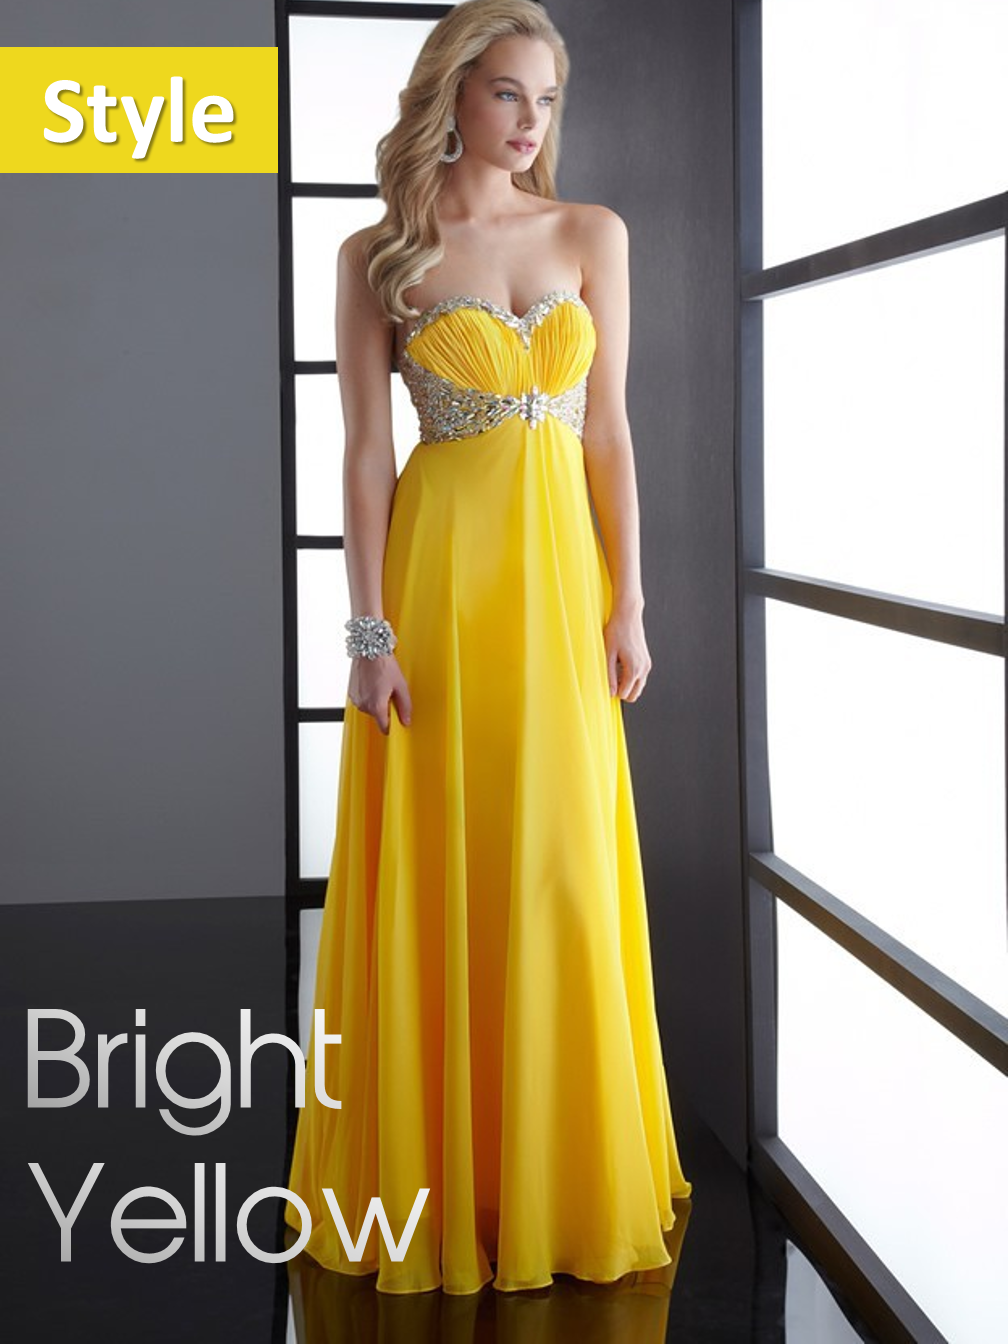 Bright Yellow Style